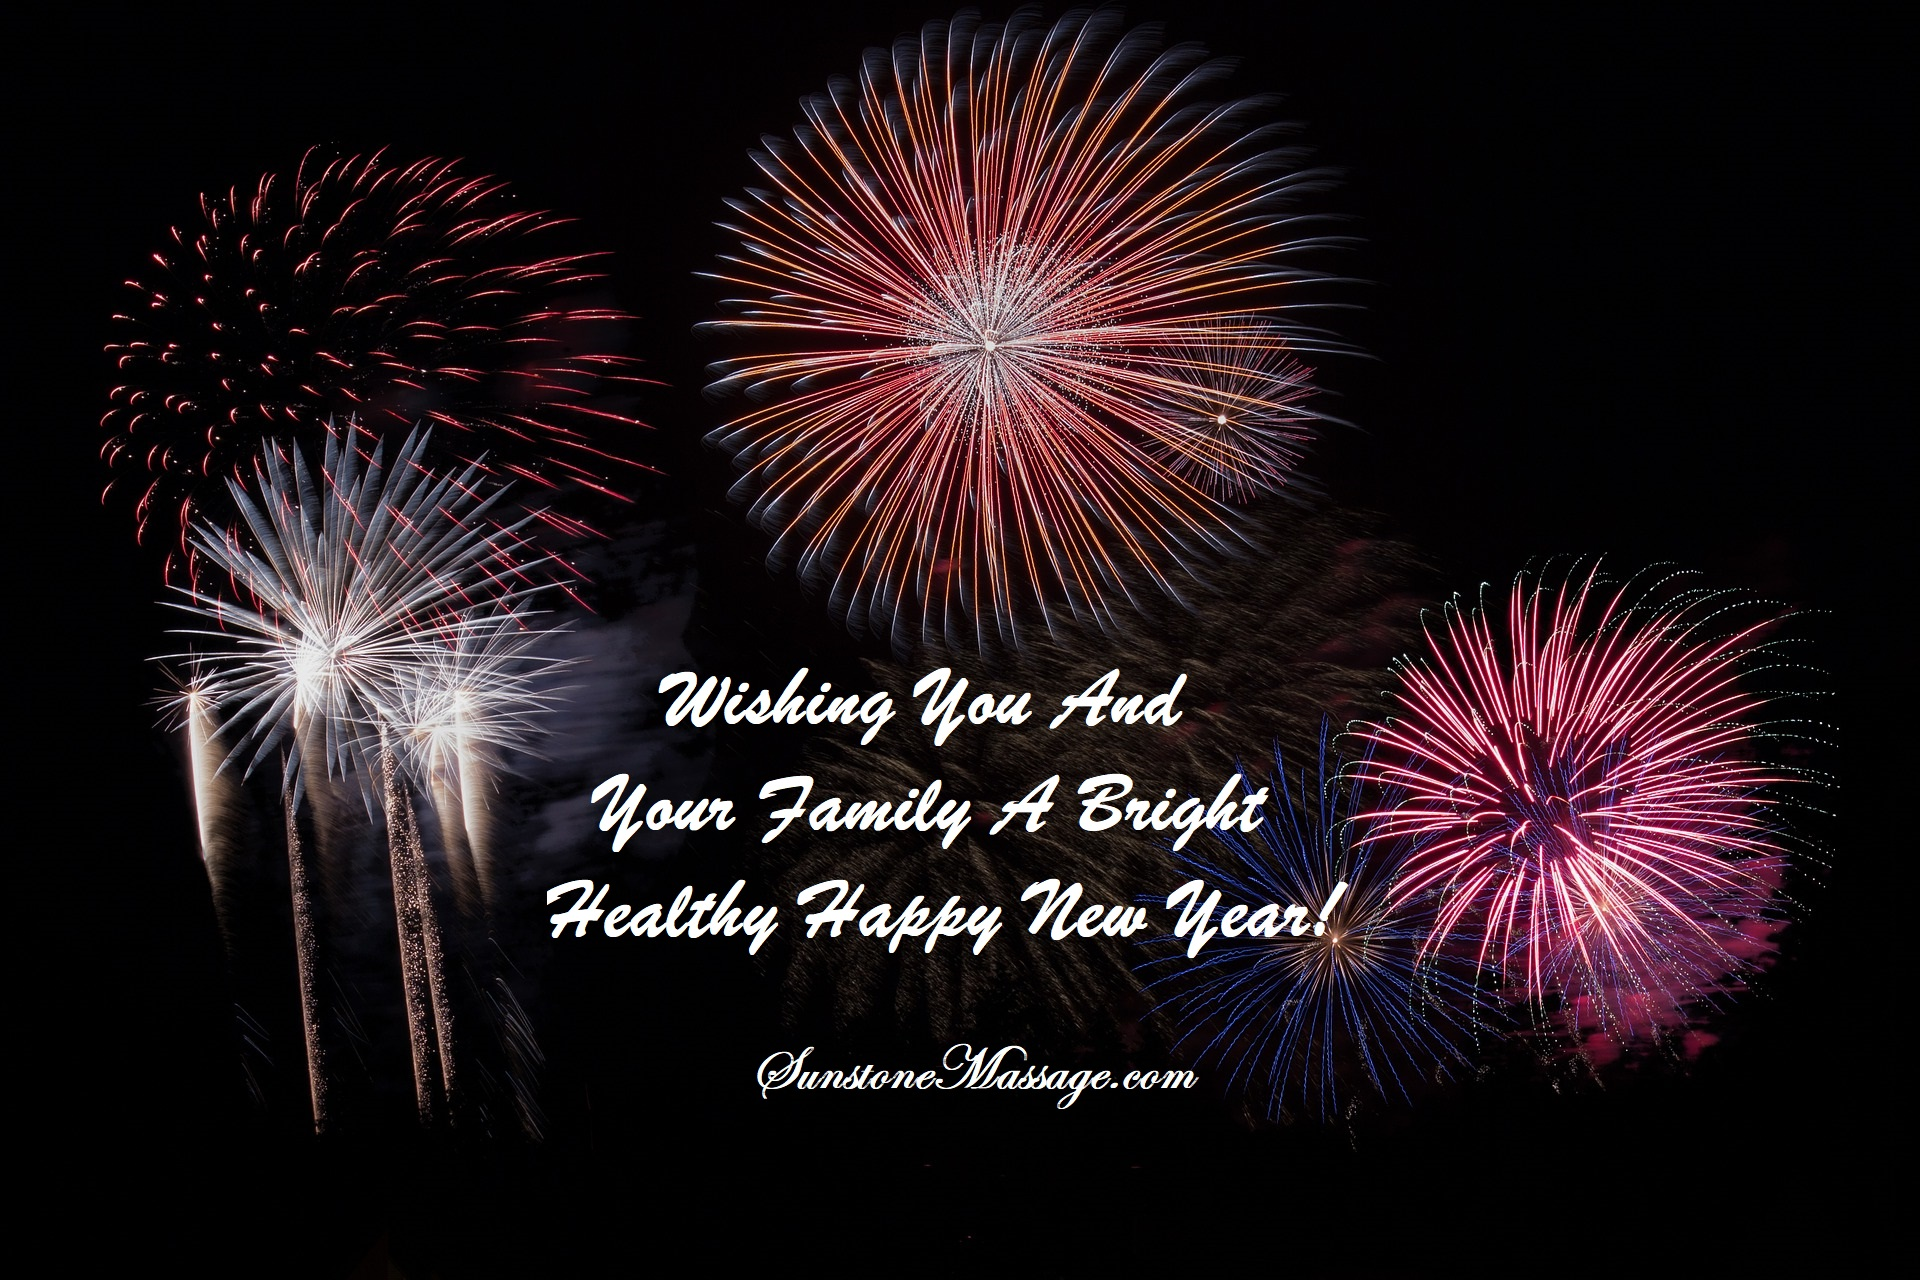 wishing you and your family a bright healthy and happy new year